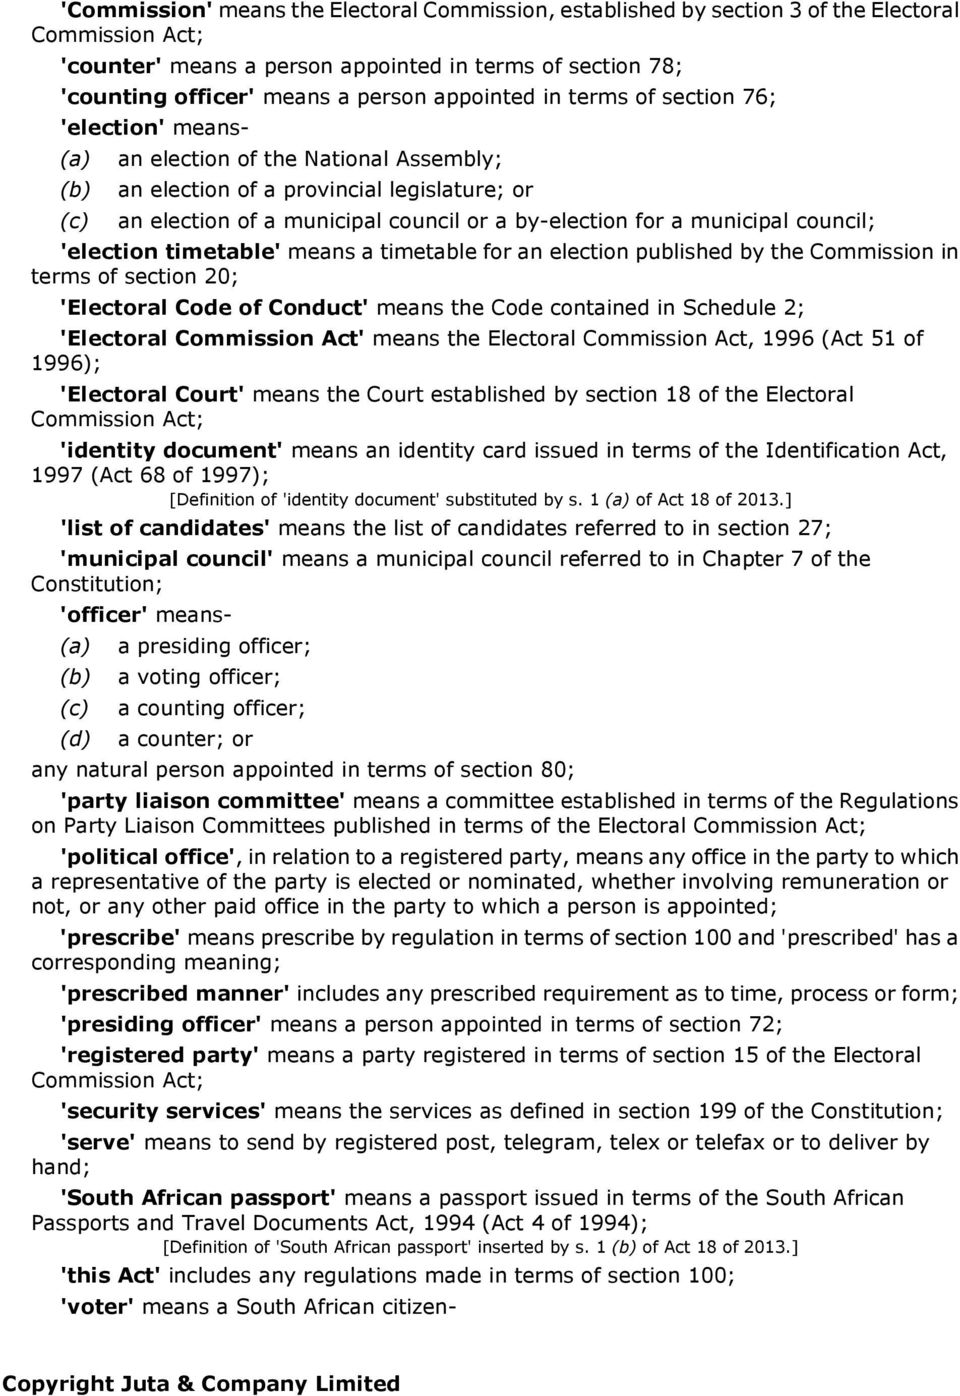 for a municipal council; 'election timetable' means a timetable for an election published by the Commission in terms of section 20; 'Electoral Code of Conduct' means the Code contained in Schedule 2;